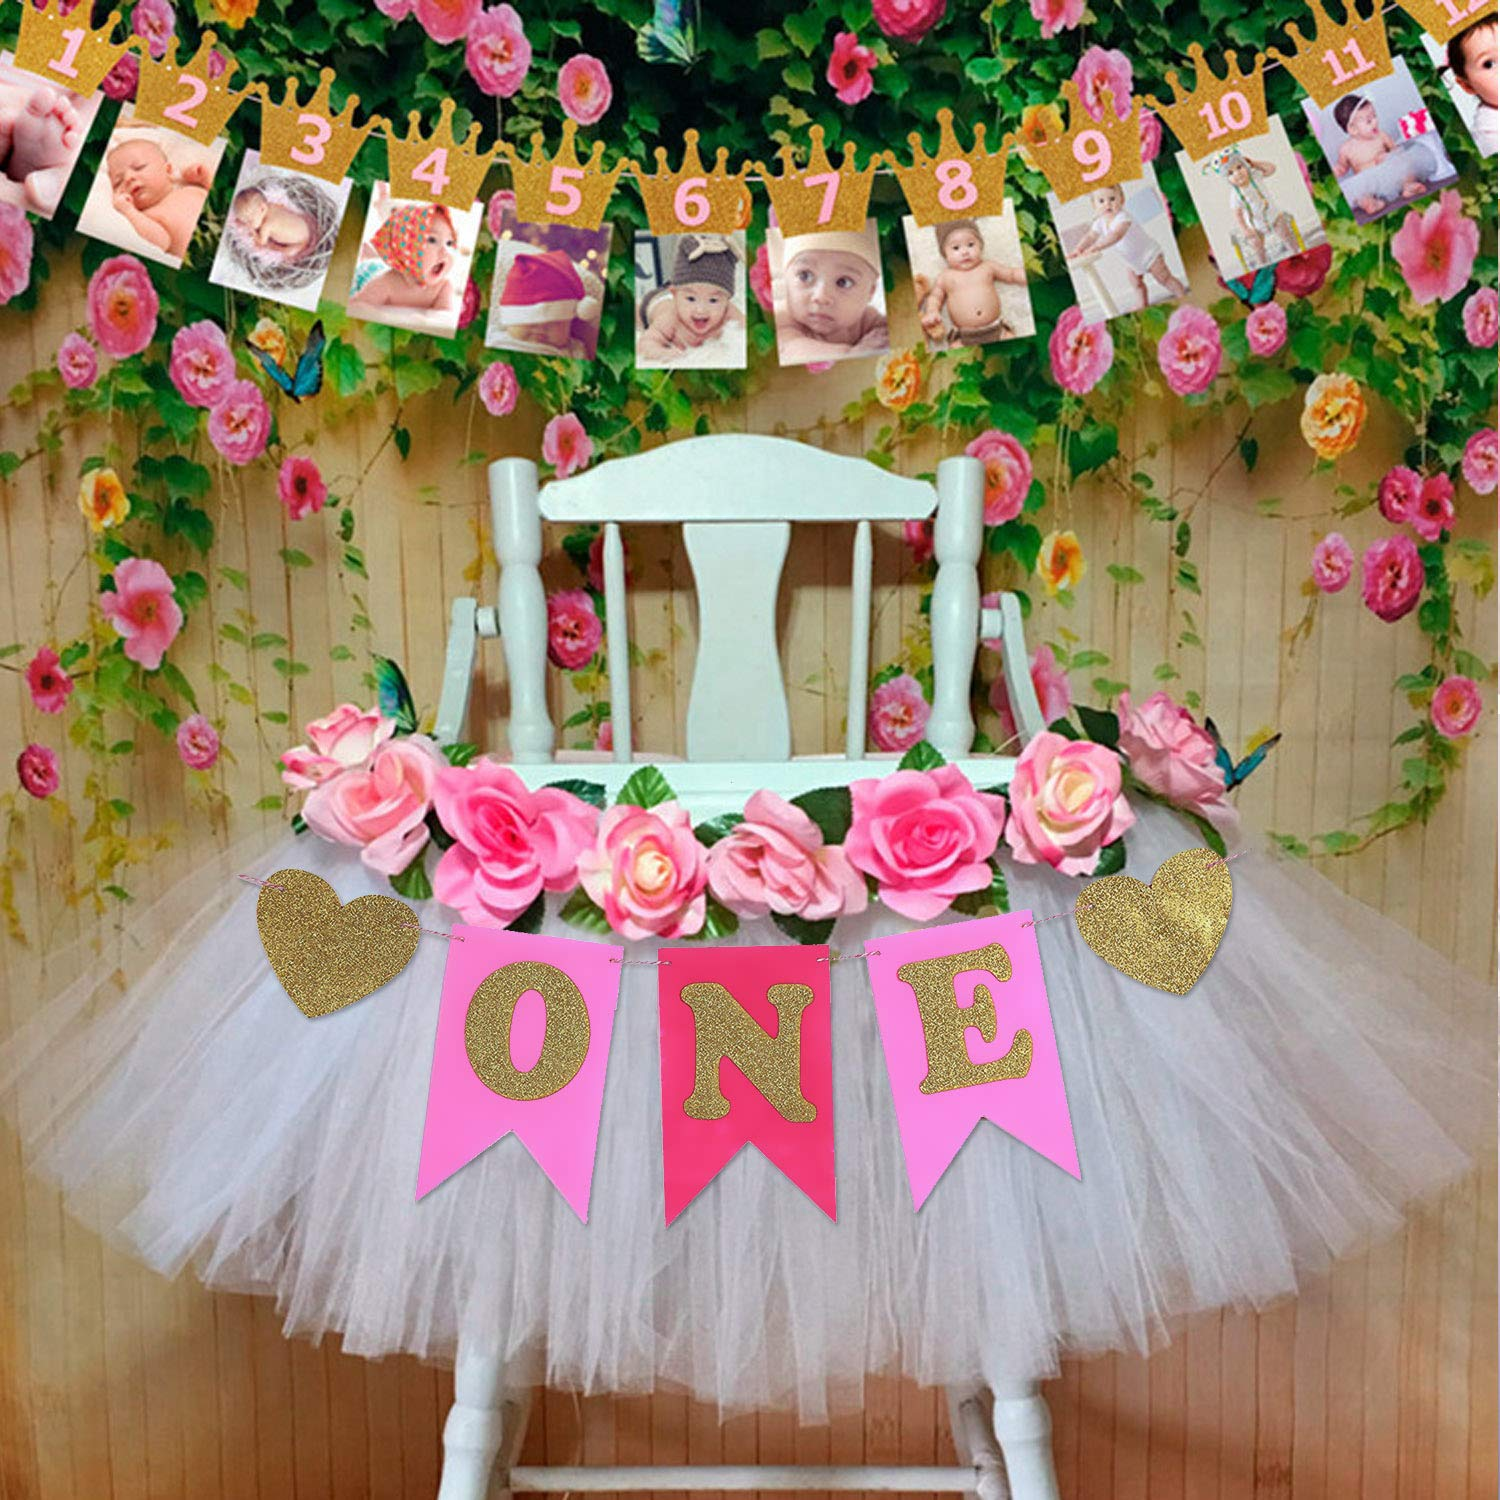 EVAIL 1st Birthday Party Decorations Pack - Baby Girl First Birthday Glitter Crown Monthly Milestone Photo Banner from 1 to 12 Months and ONE Pink Glitter Pennant Banner